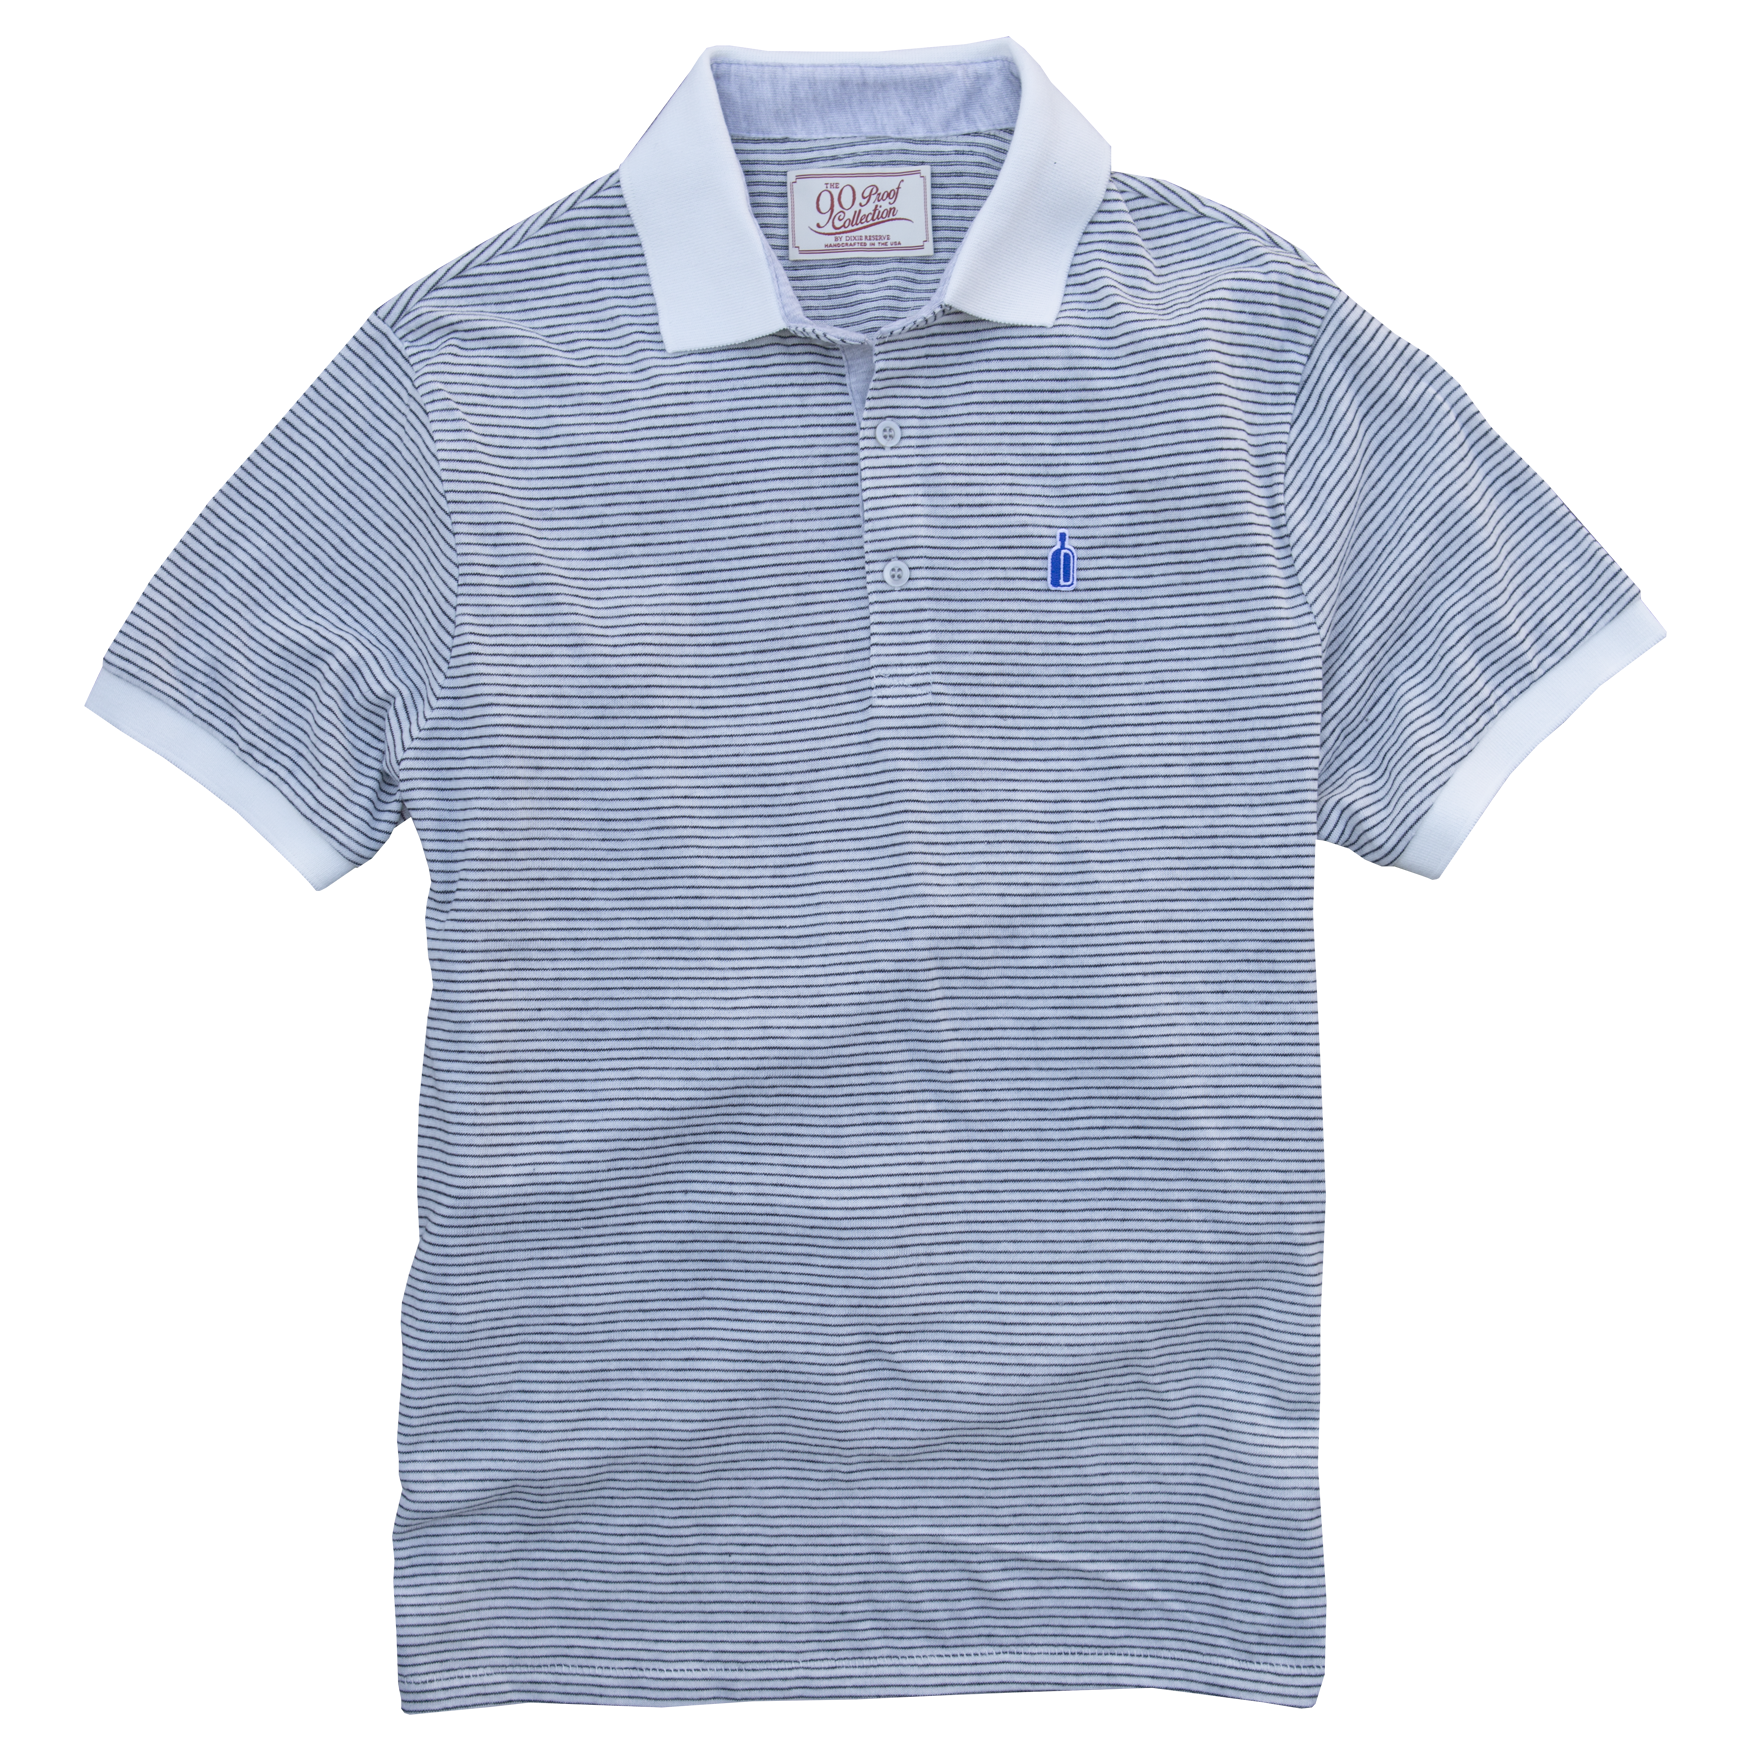 90 PROOF GOLF POLO